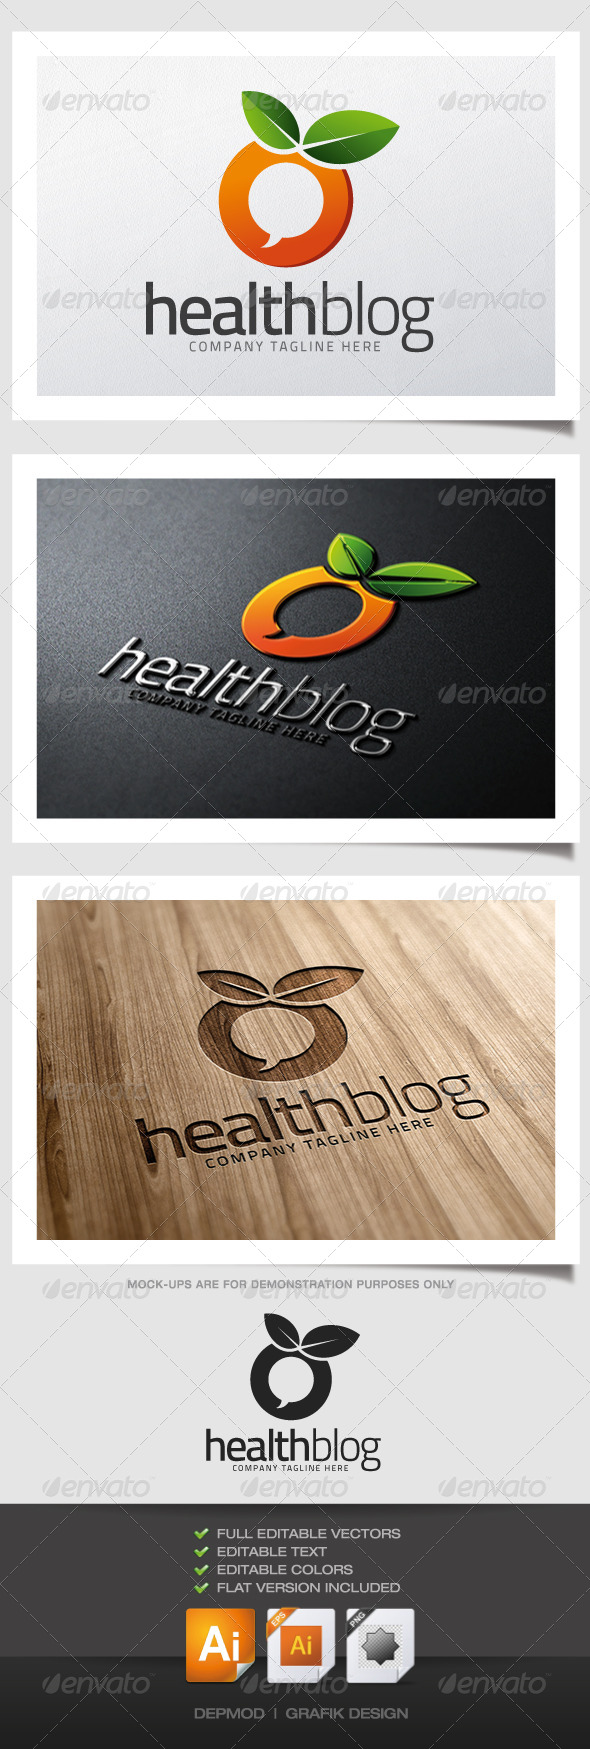 GraphicRiver Health Blog Logo 5123906